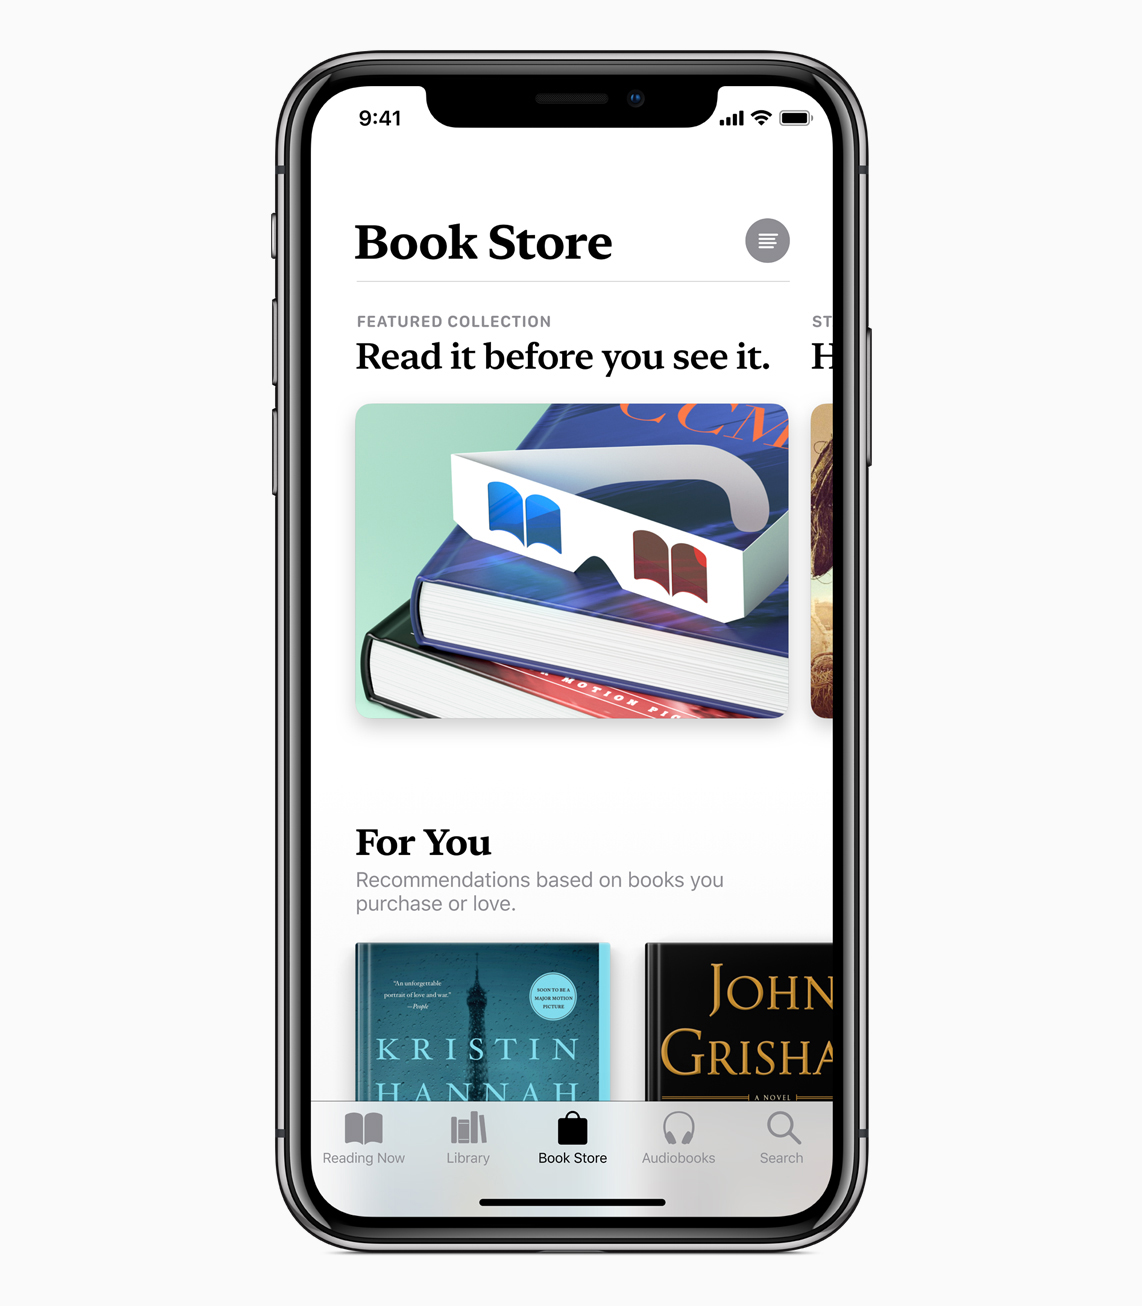 Apple Books Book Store